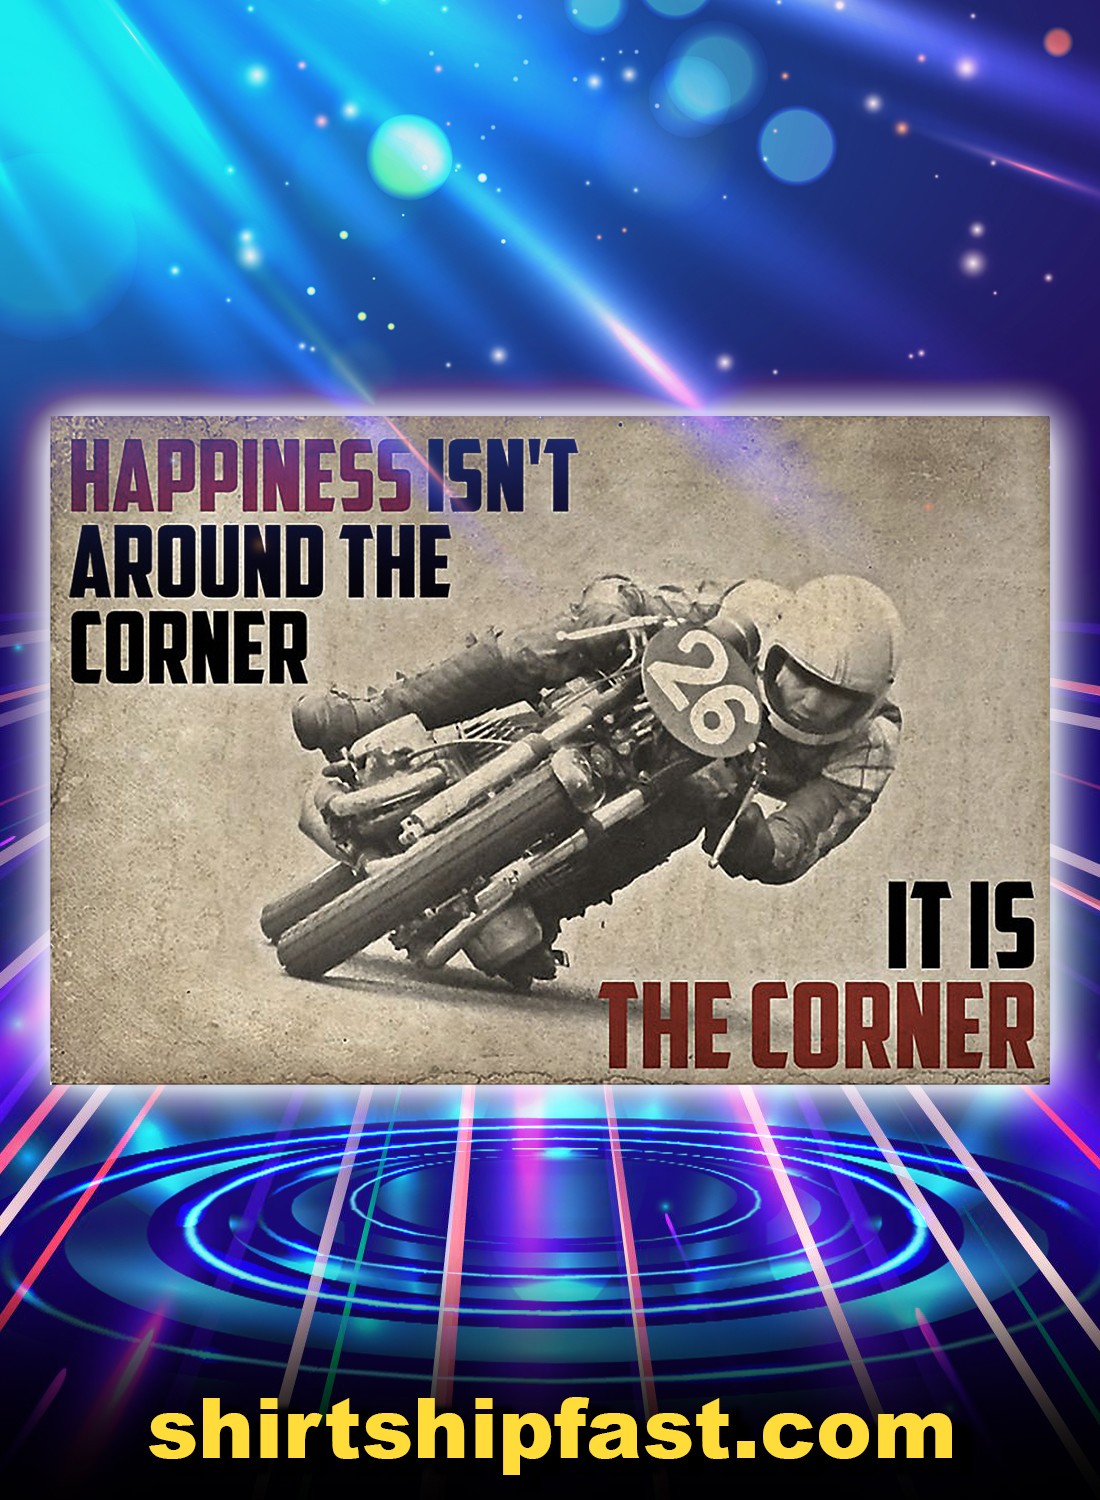 Motorcycle happiness isn't around the corner poster